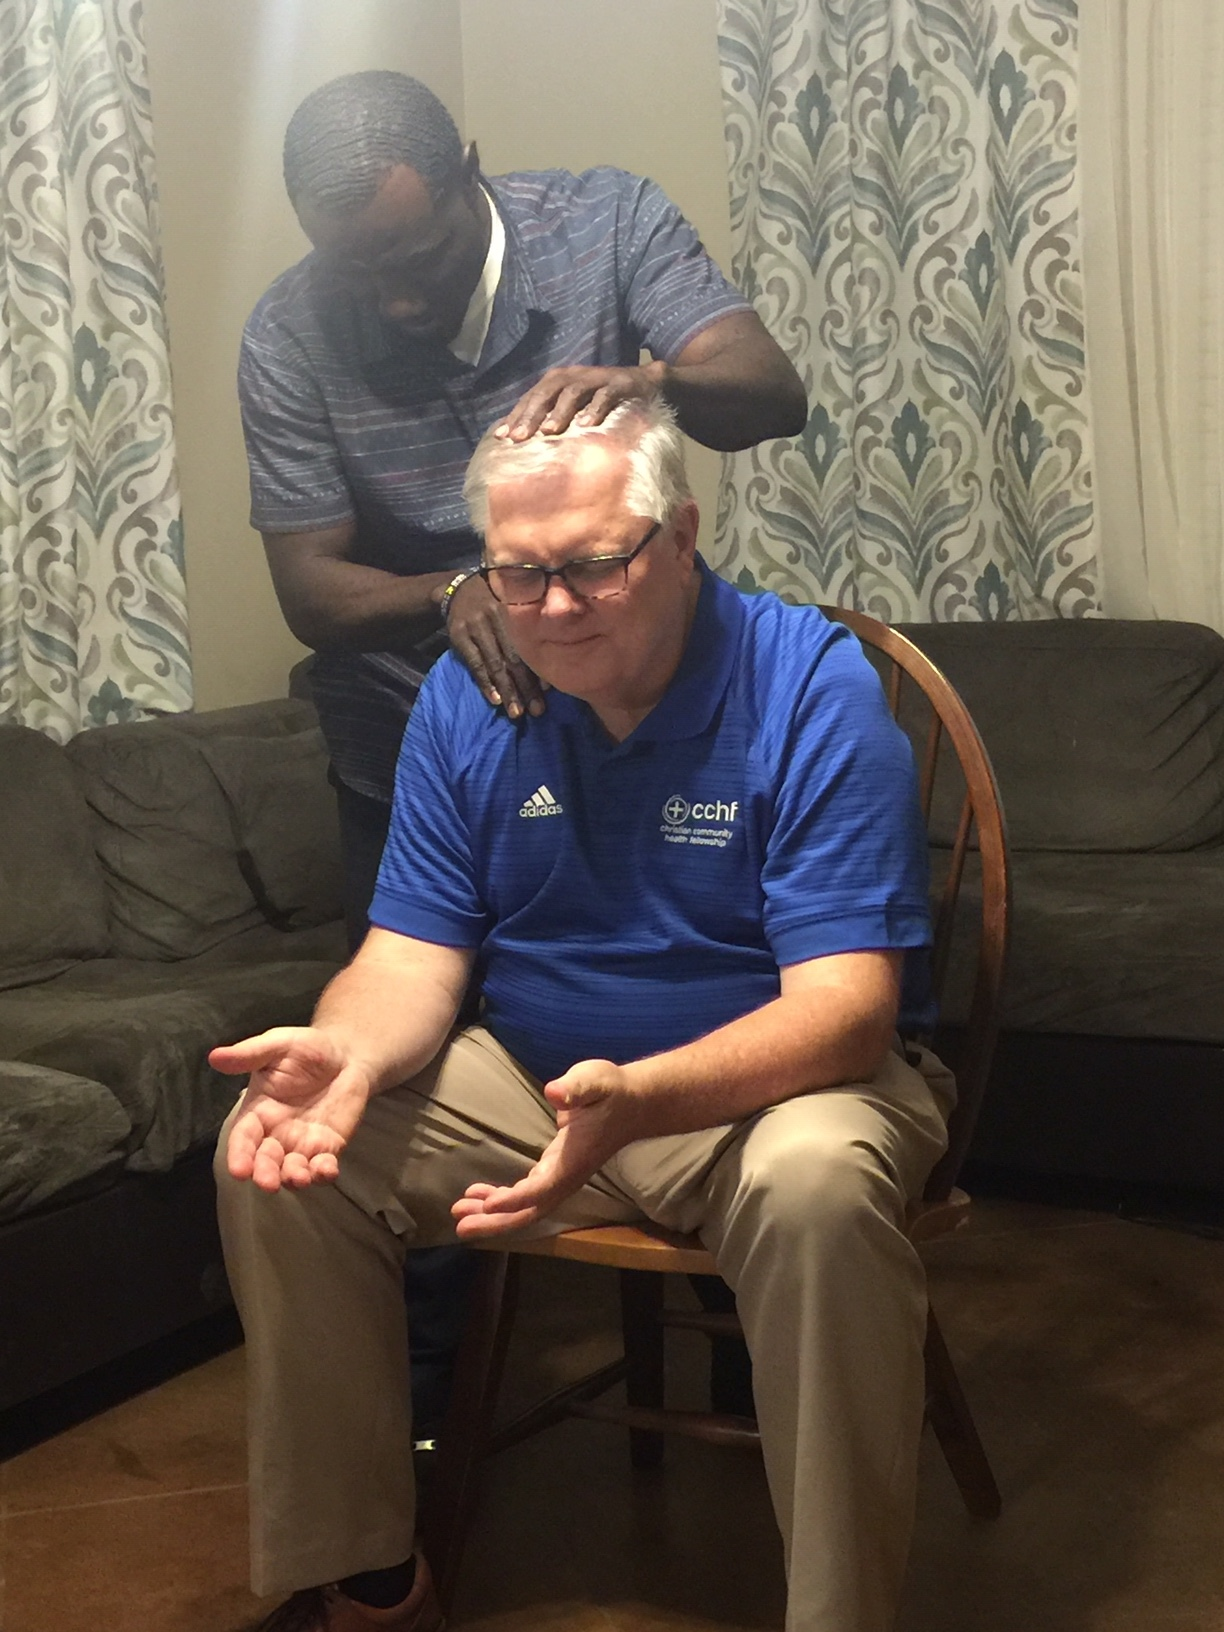 Johnnie Doe, a good friend from Liberia, held a prayer meeting for me in his home where a group of neighbors and African brothers met to pray for me. Each person laid hands on me and prayed for healing.